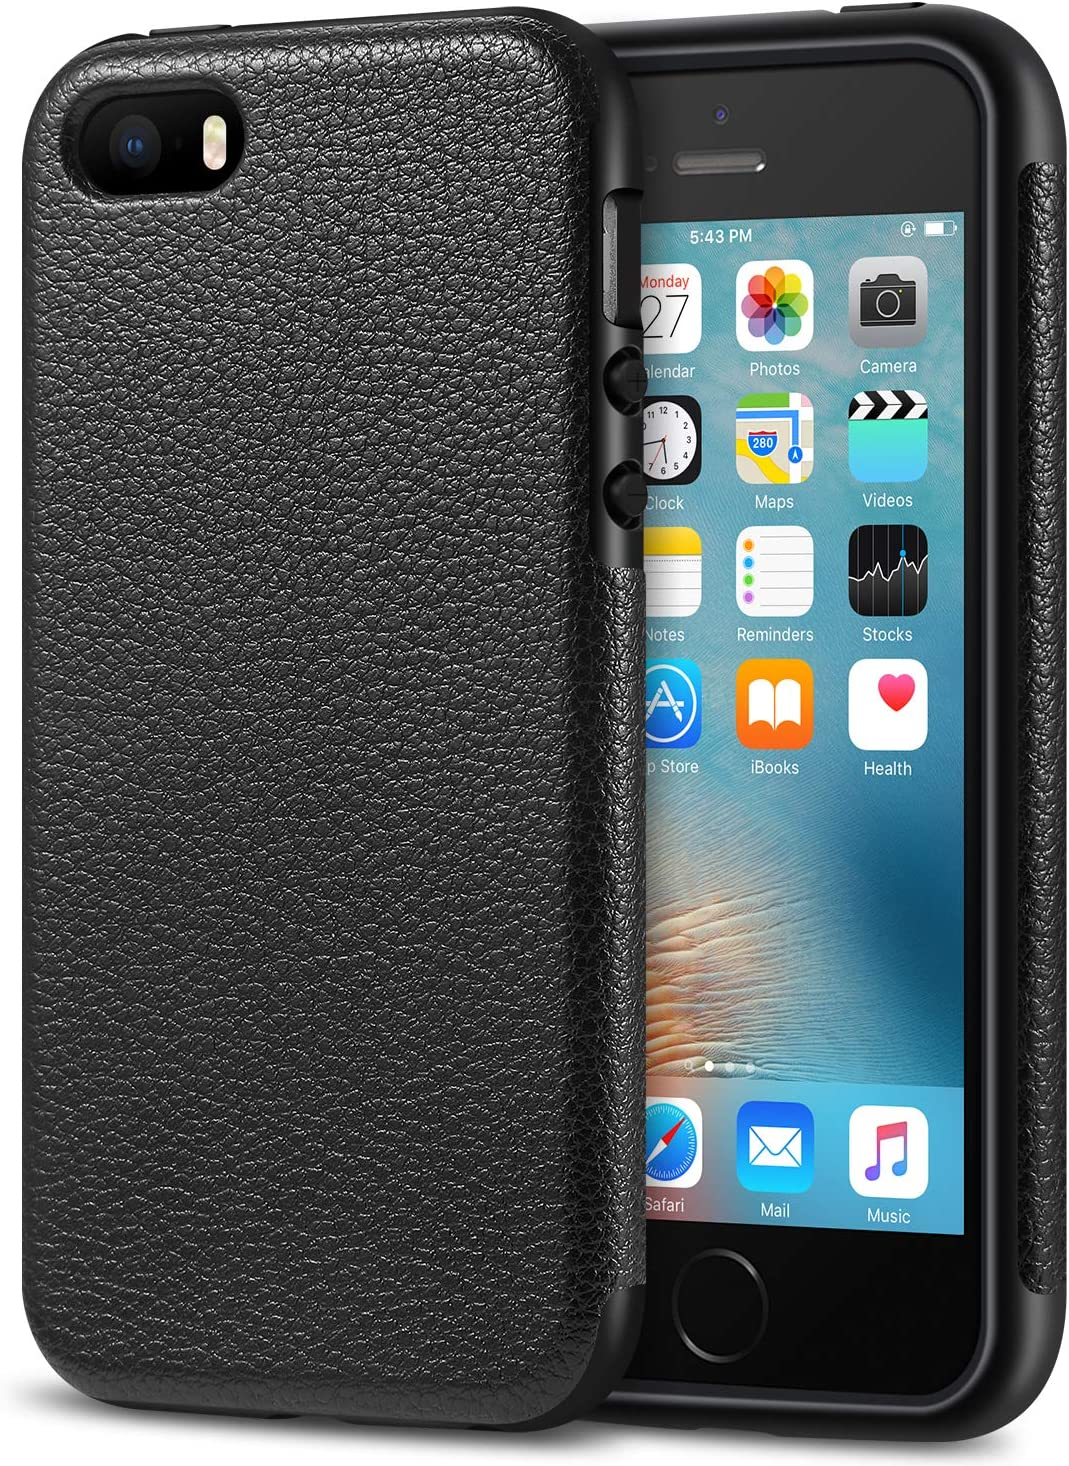 Tasikar iPhone SE Case Drop Protection Case Premium PU Leather and TPU Design for iPhone SE and iPhone 5S (Black)